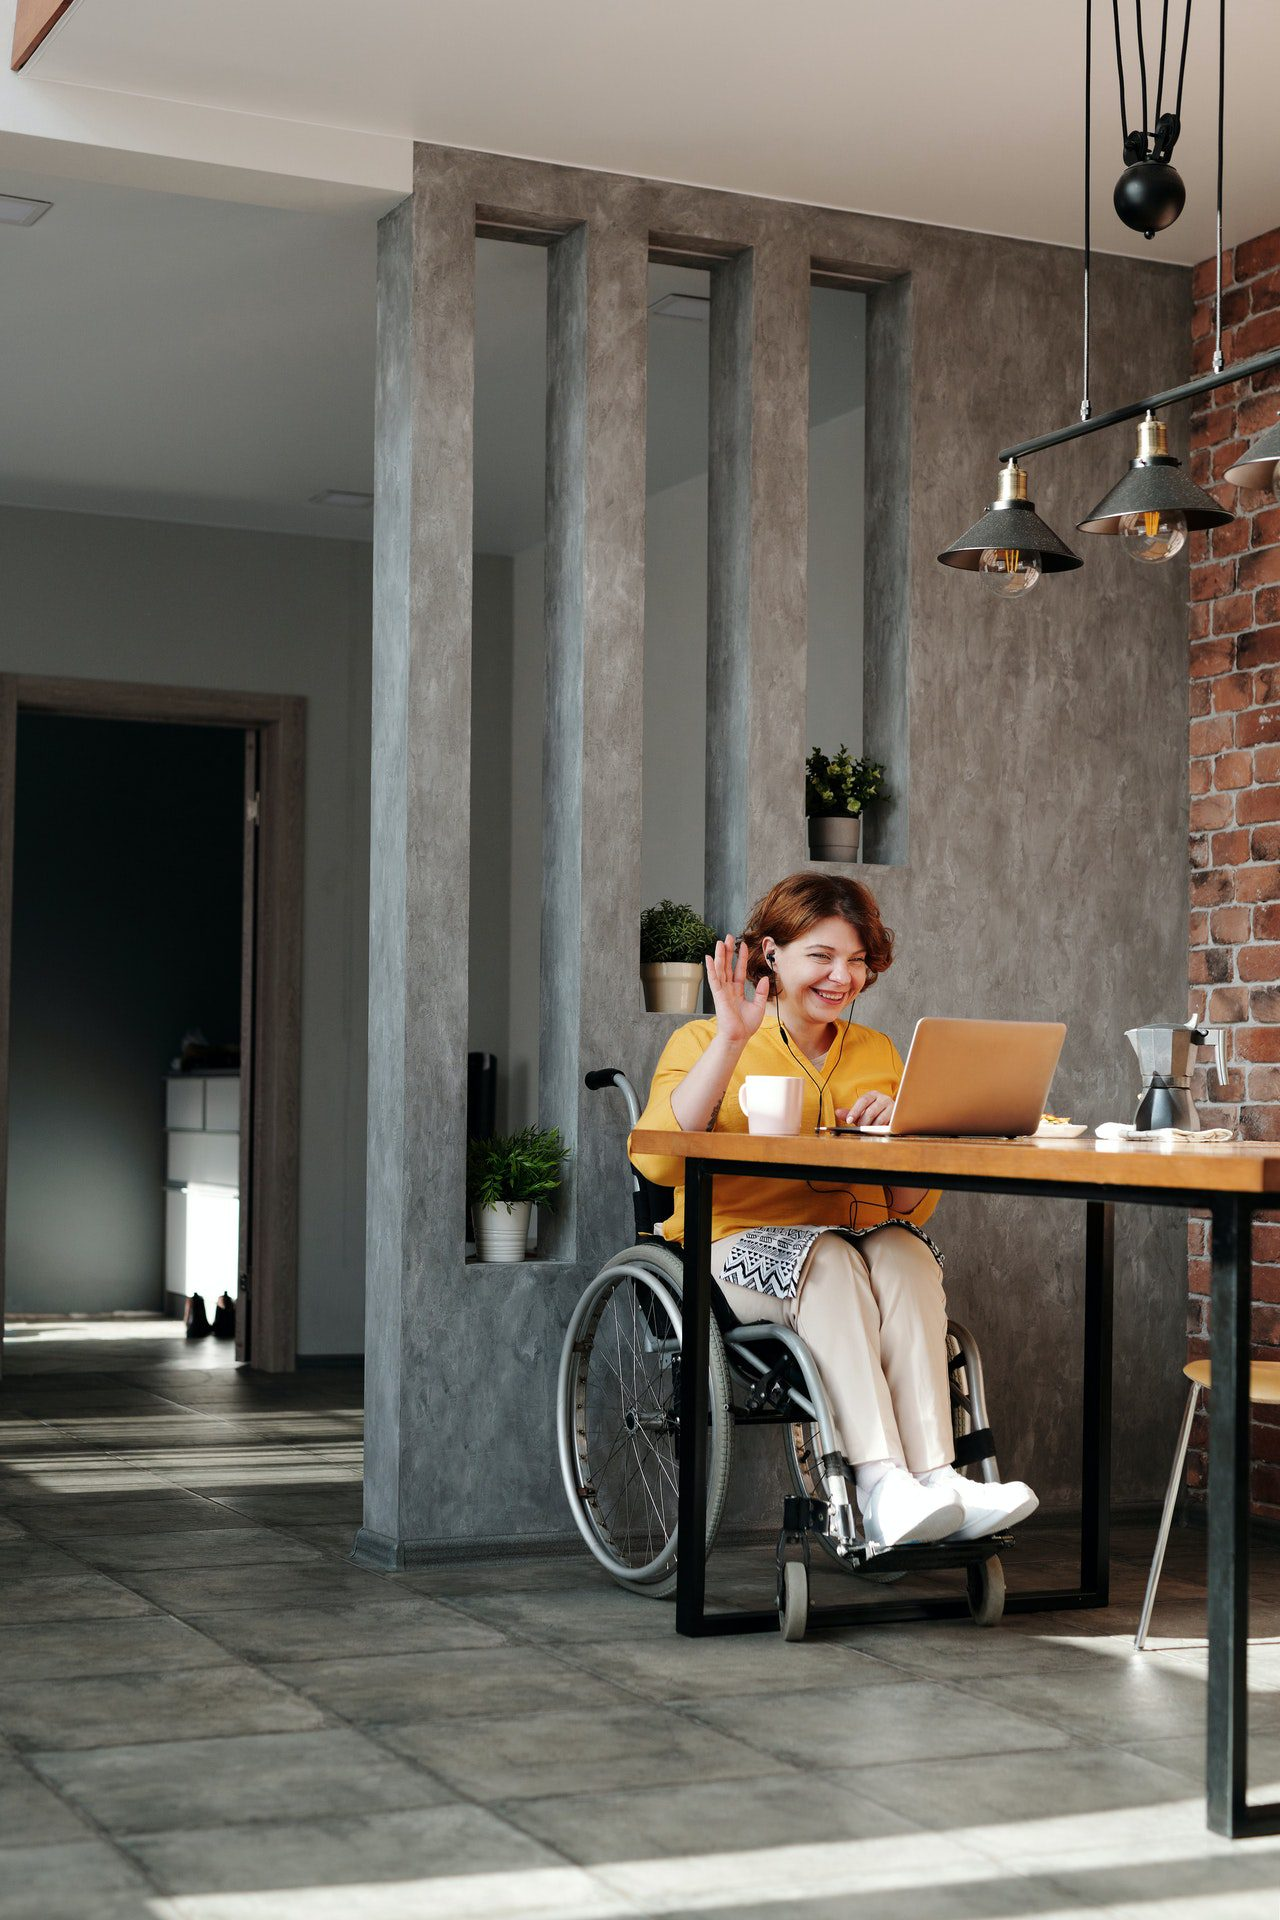 You are currently viewing These Small Changes Can Make Your Home More Accessible